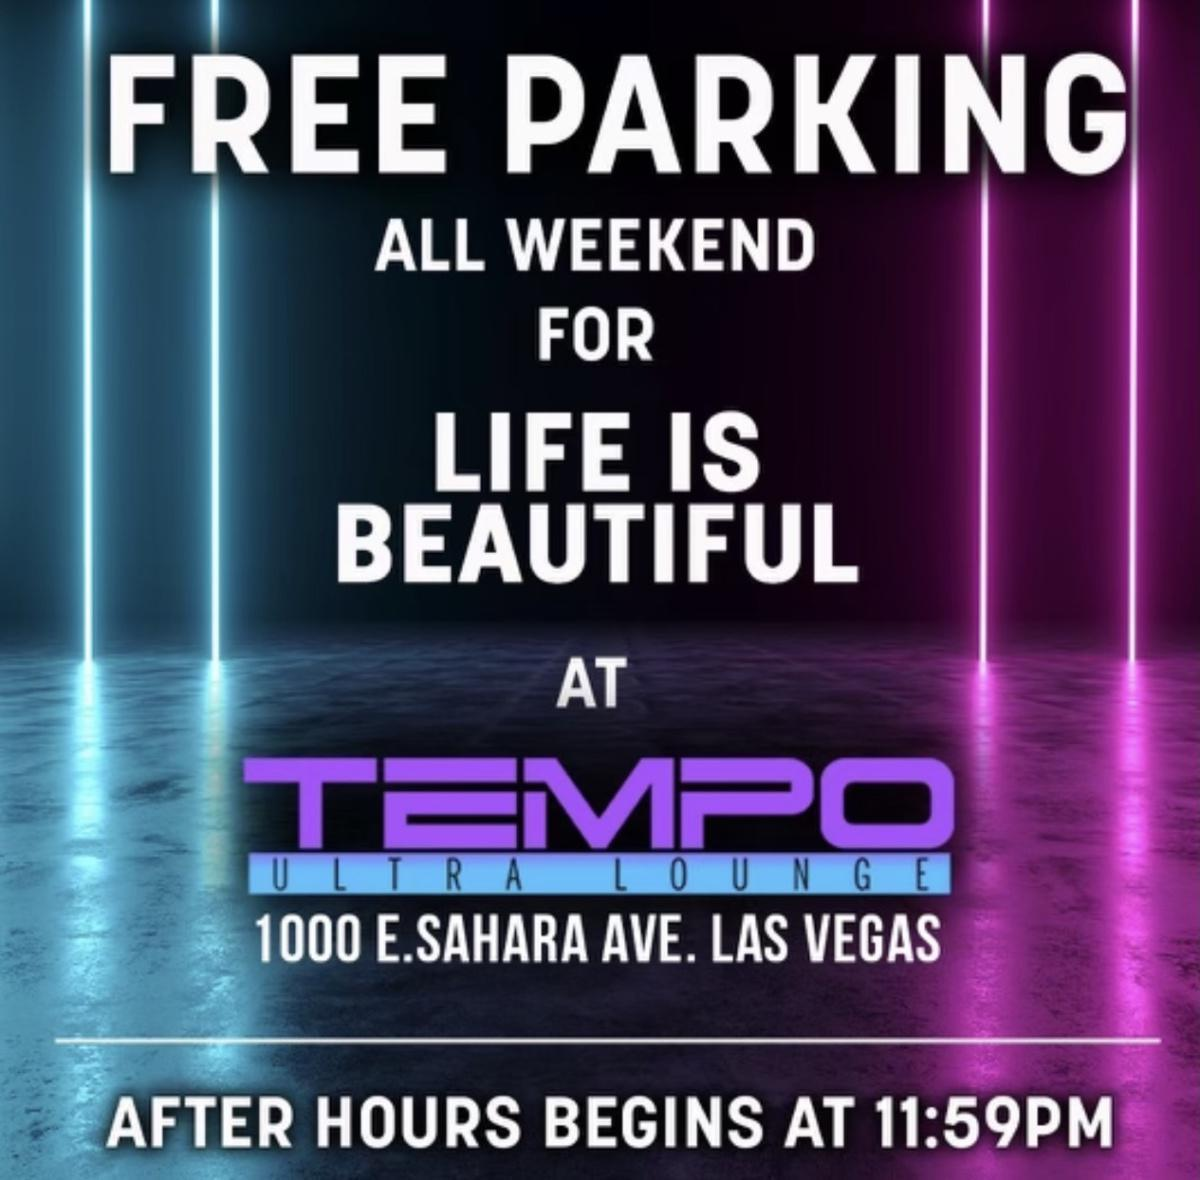 KICKBACK INCREASE to $15 per male/female for Life is Beautiful weekend at Tempo Ultra Lounge!!! Tempo is Vegas' premier late-late club - kickbacks start at 11:59pm Fri-Sun - we payout till 7am!